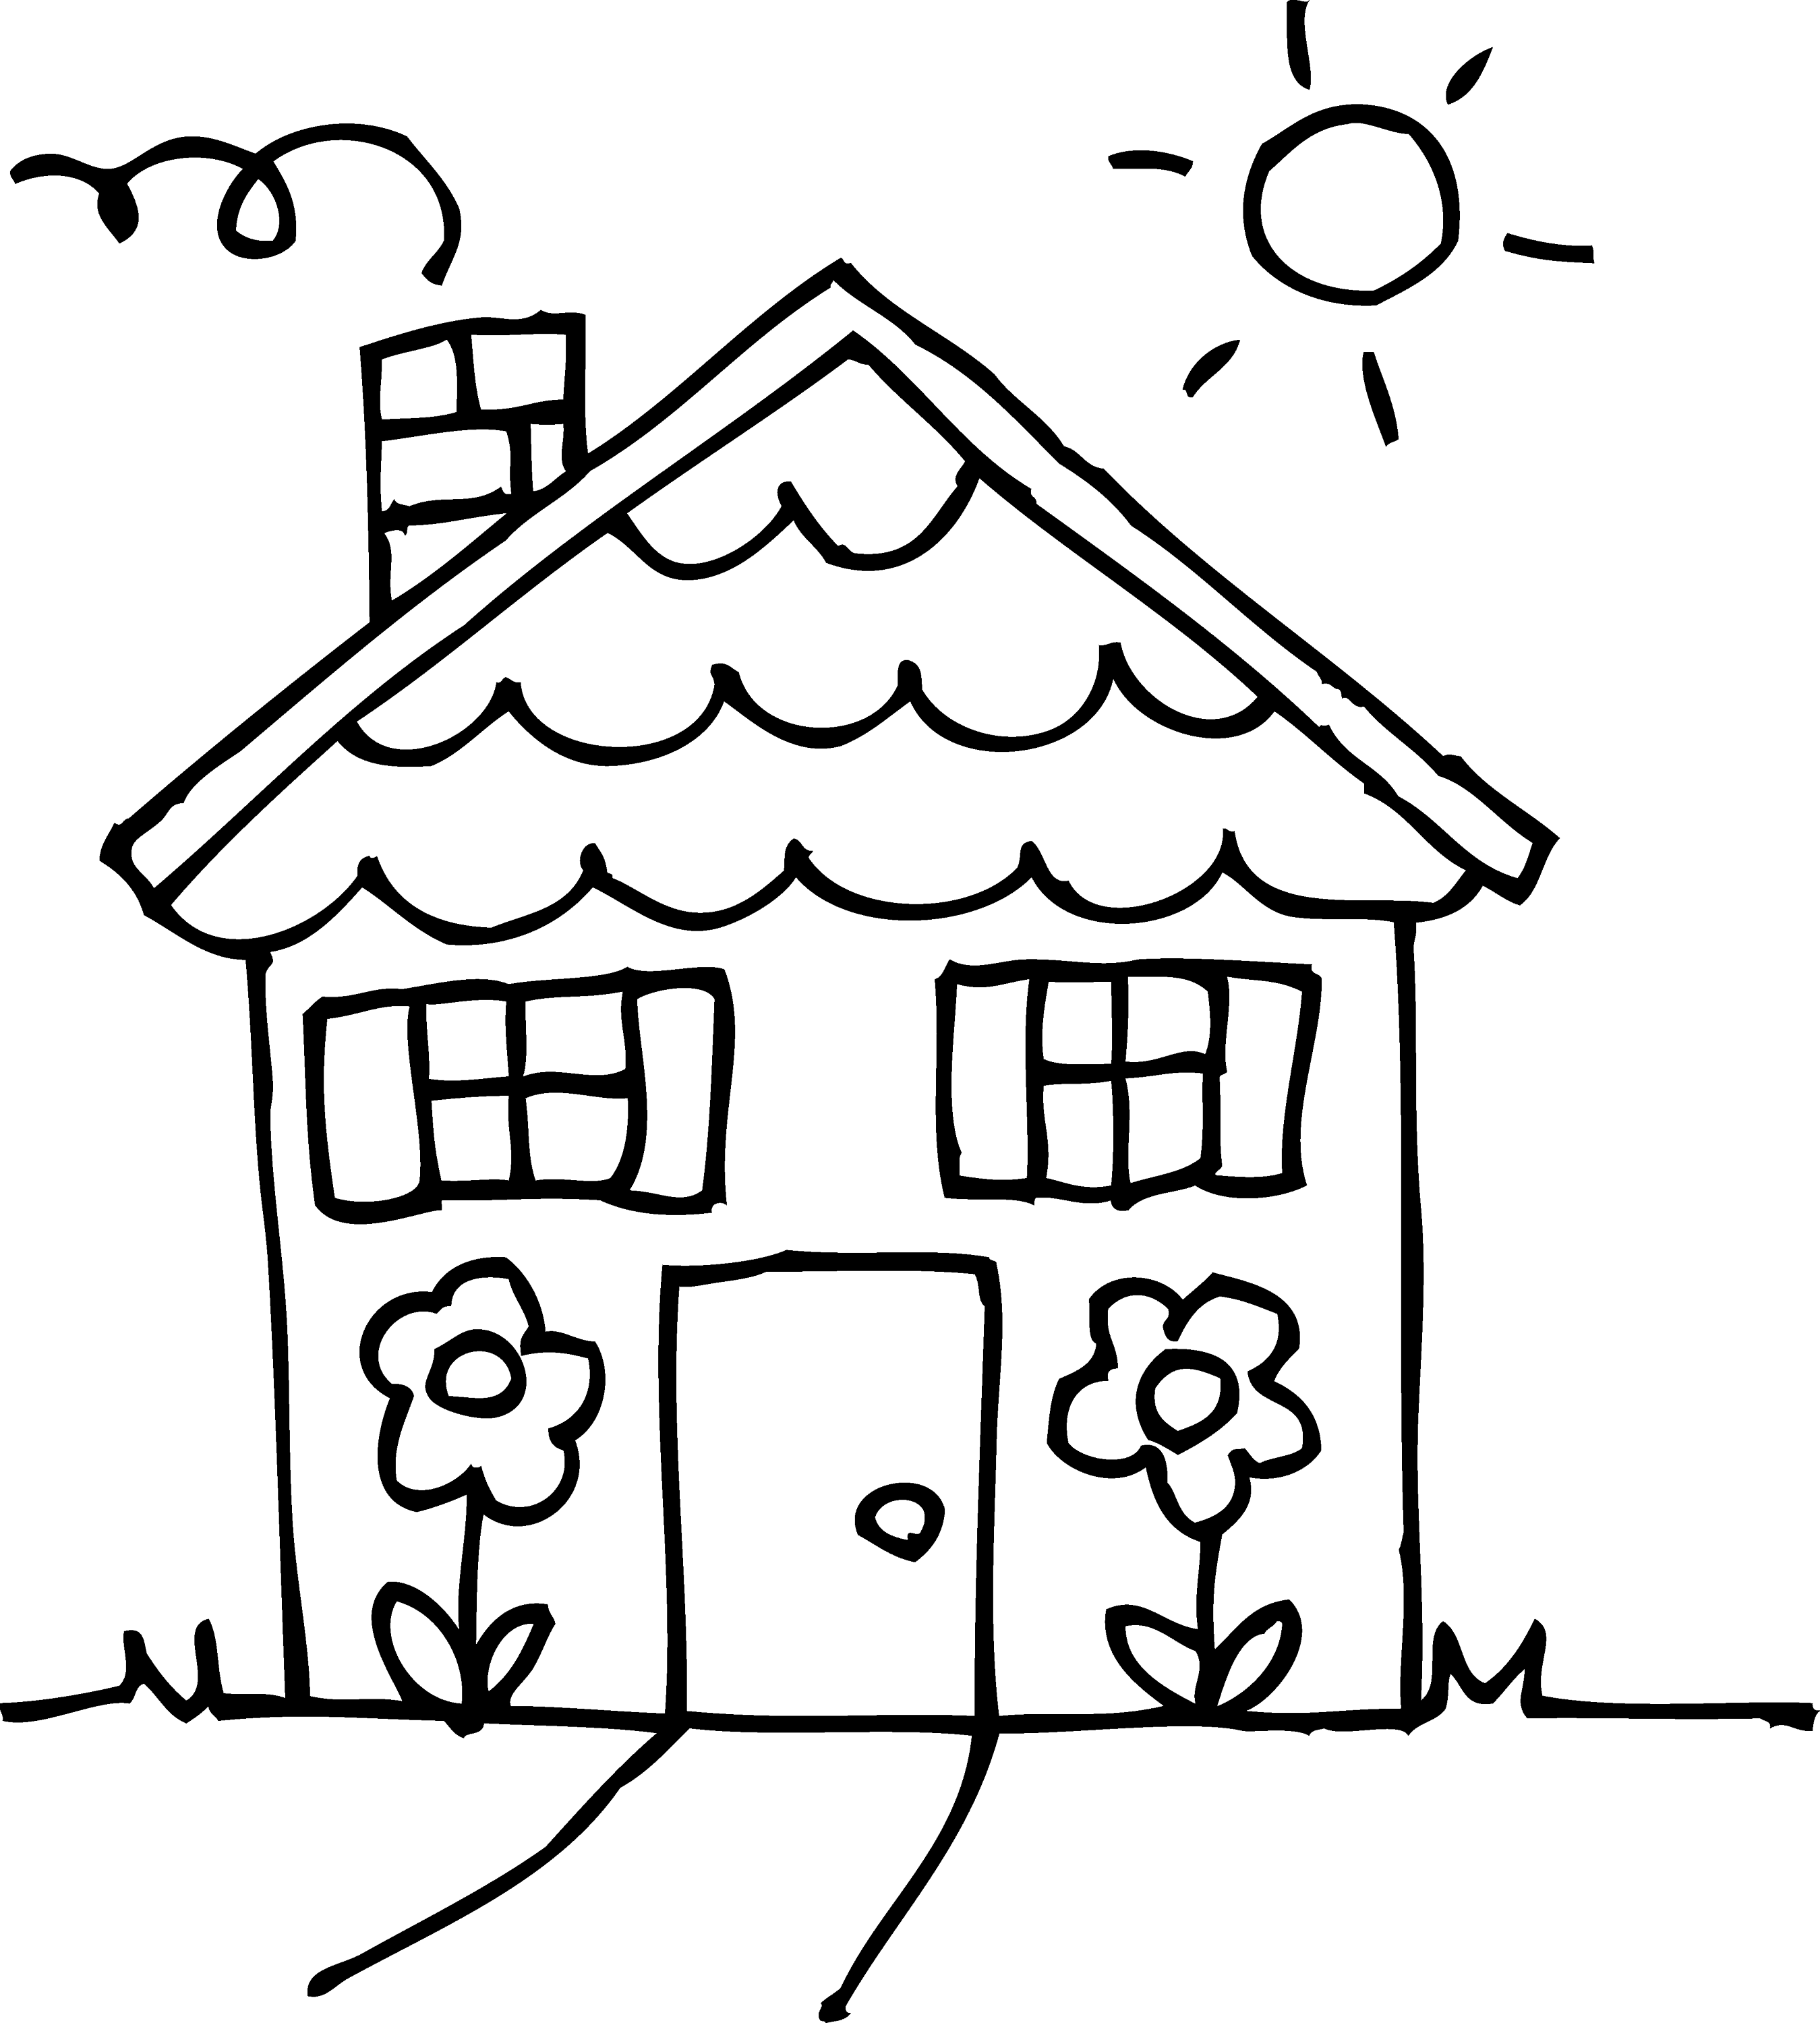 coloring outline of a house house outline drawing at getdrawings free download coloring of a house outline